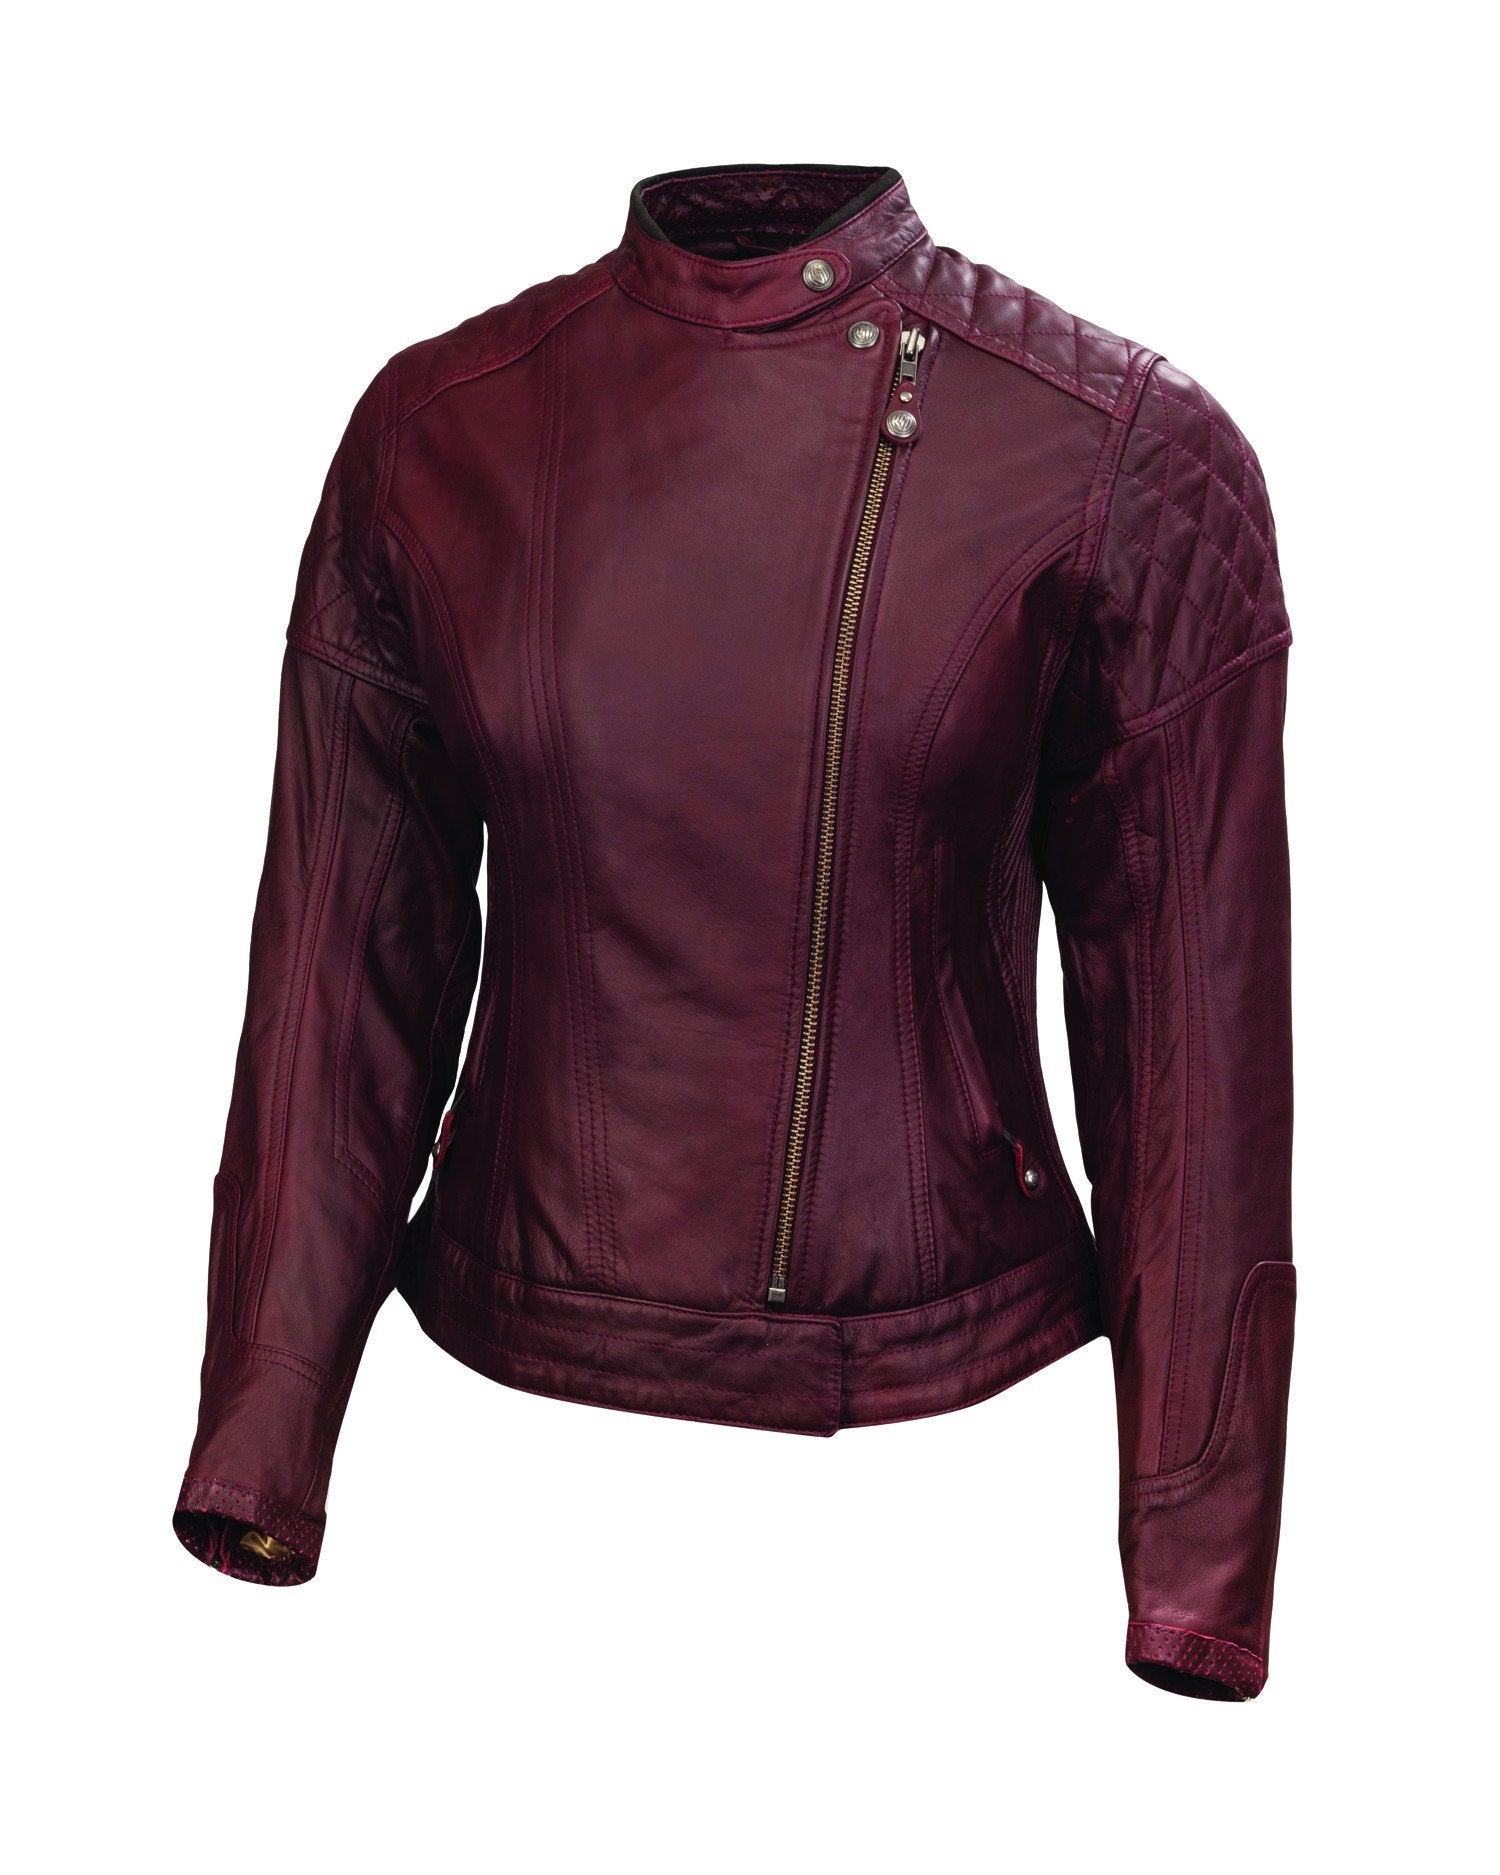 Roland Sands Design - Roland Sands Design Riot Oxblood Ladies Leather Jacket - Ladies Jackets - Salt Flats Clothing